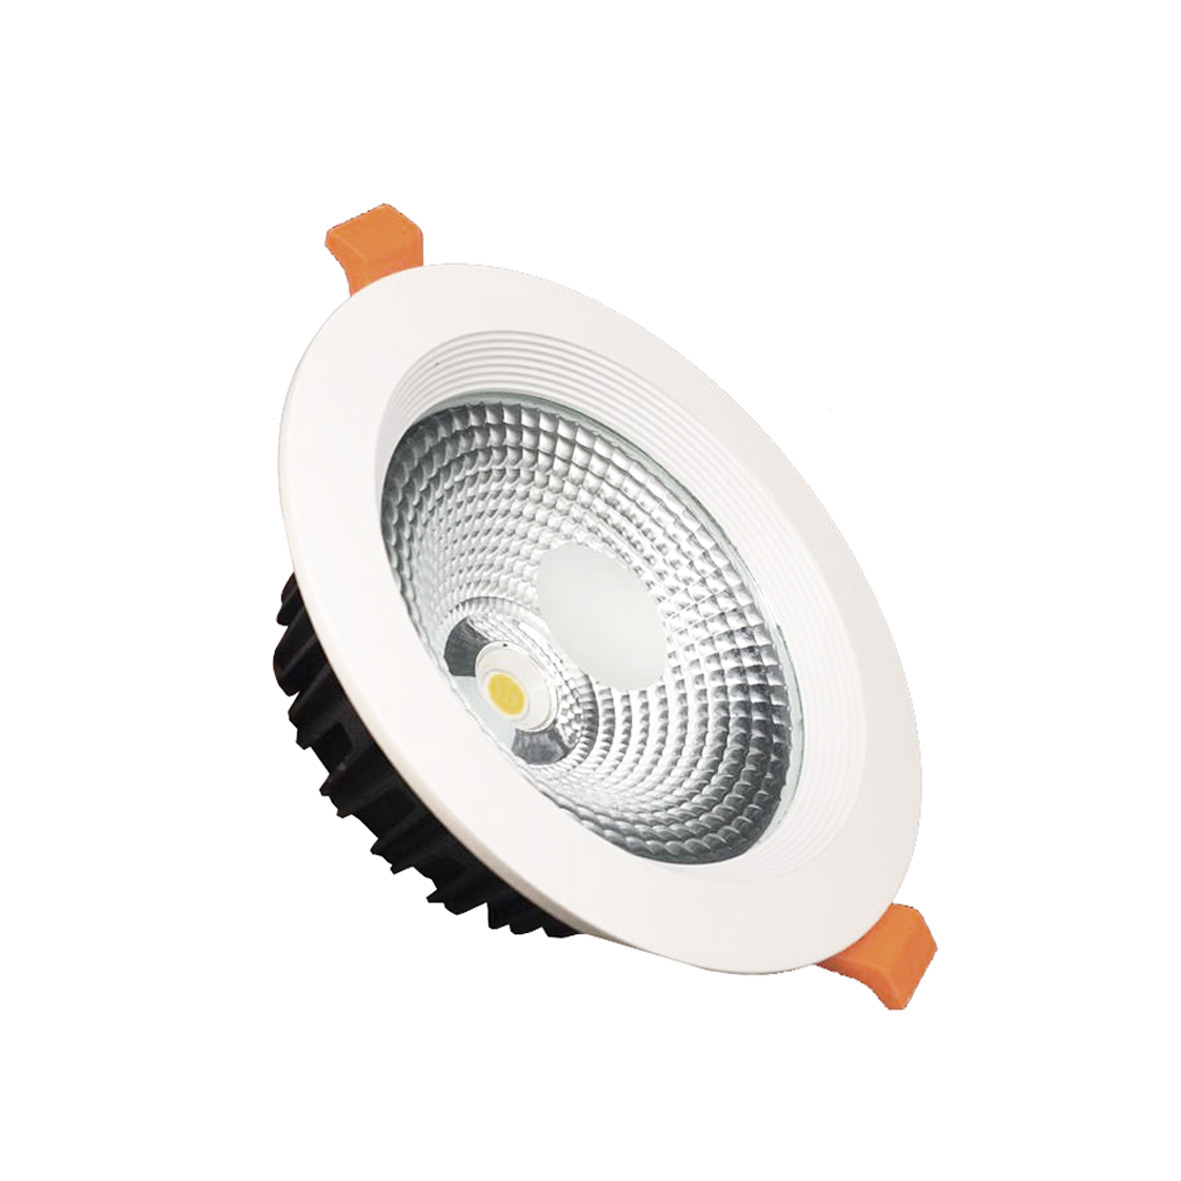 LED spotlight recessed round 15W diameter 140mm cob Powerful